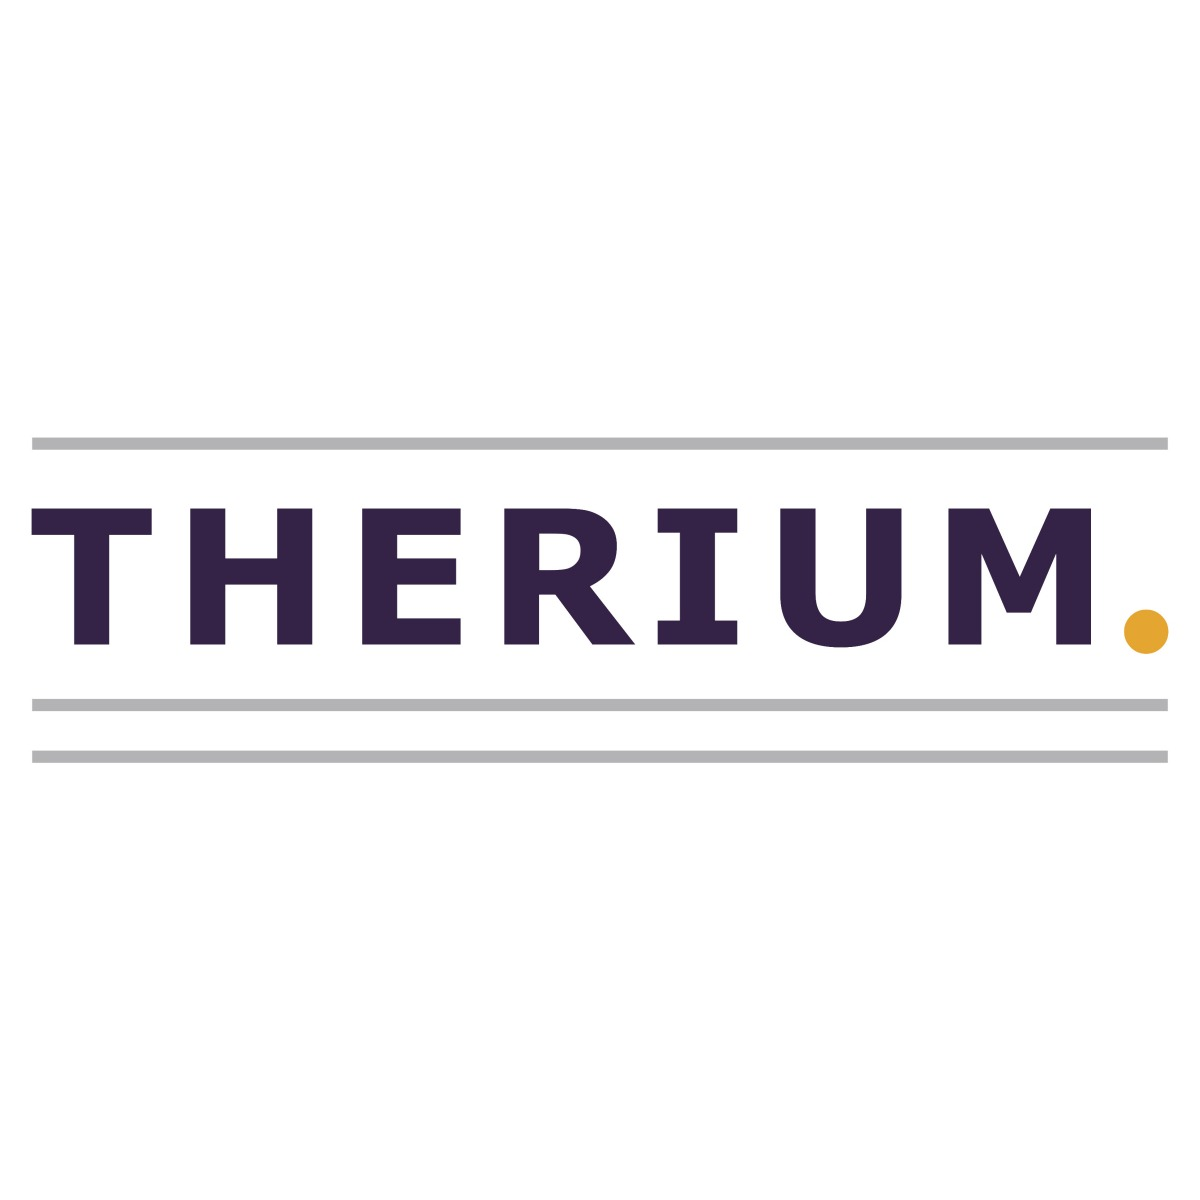 the Therium Capital Management logo.